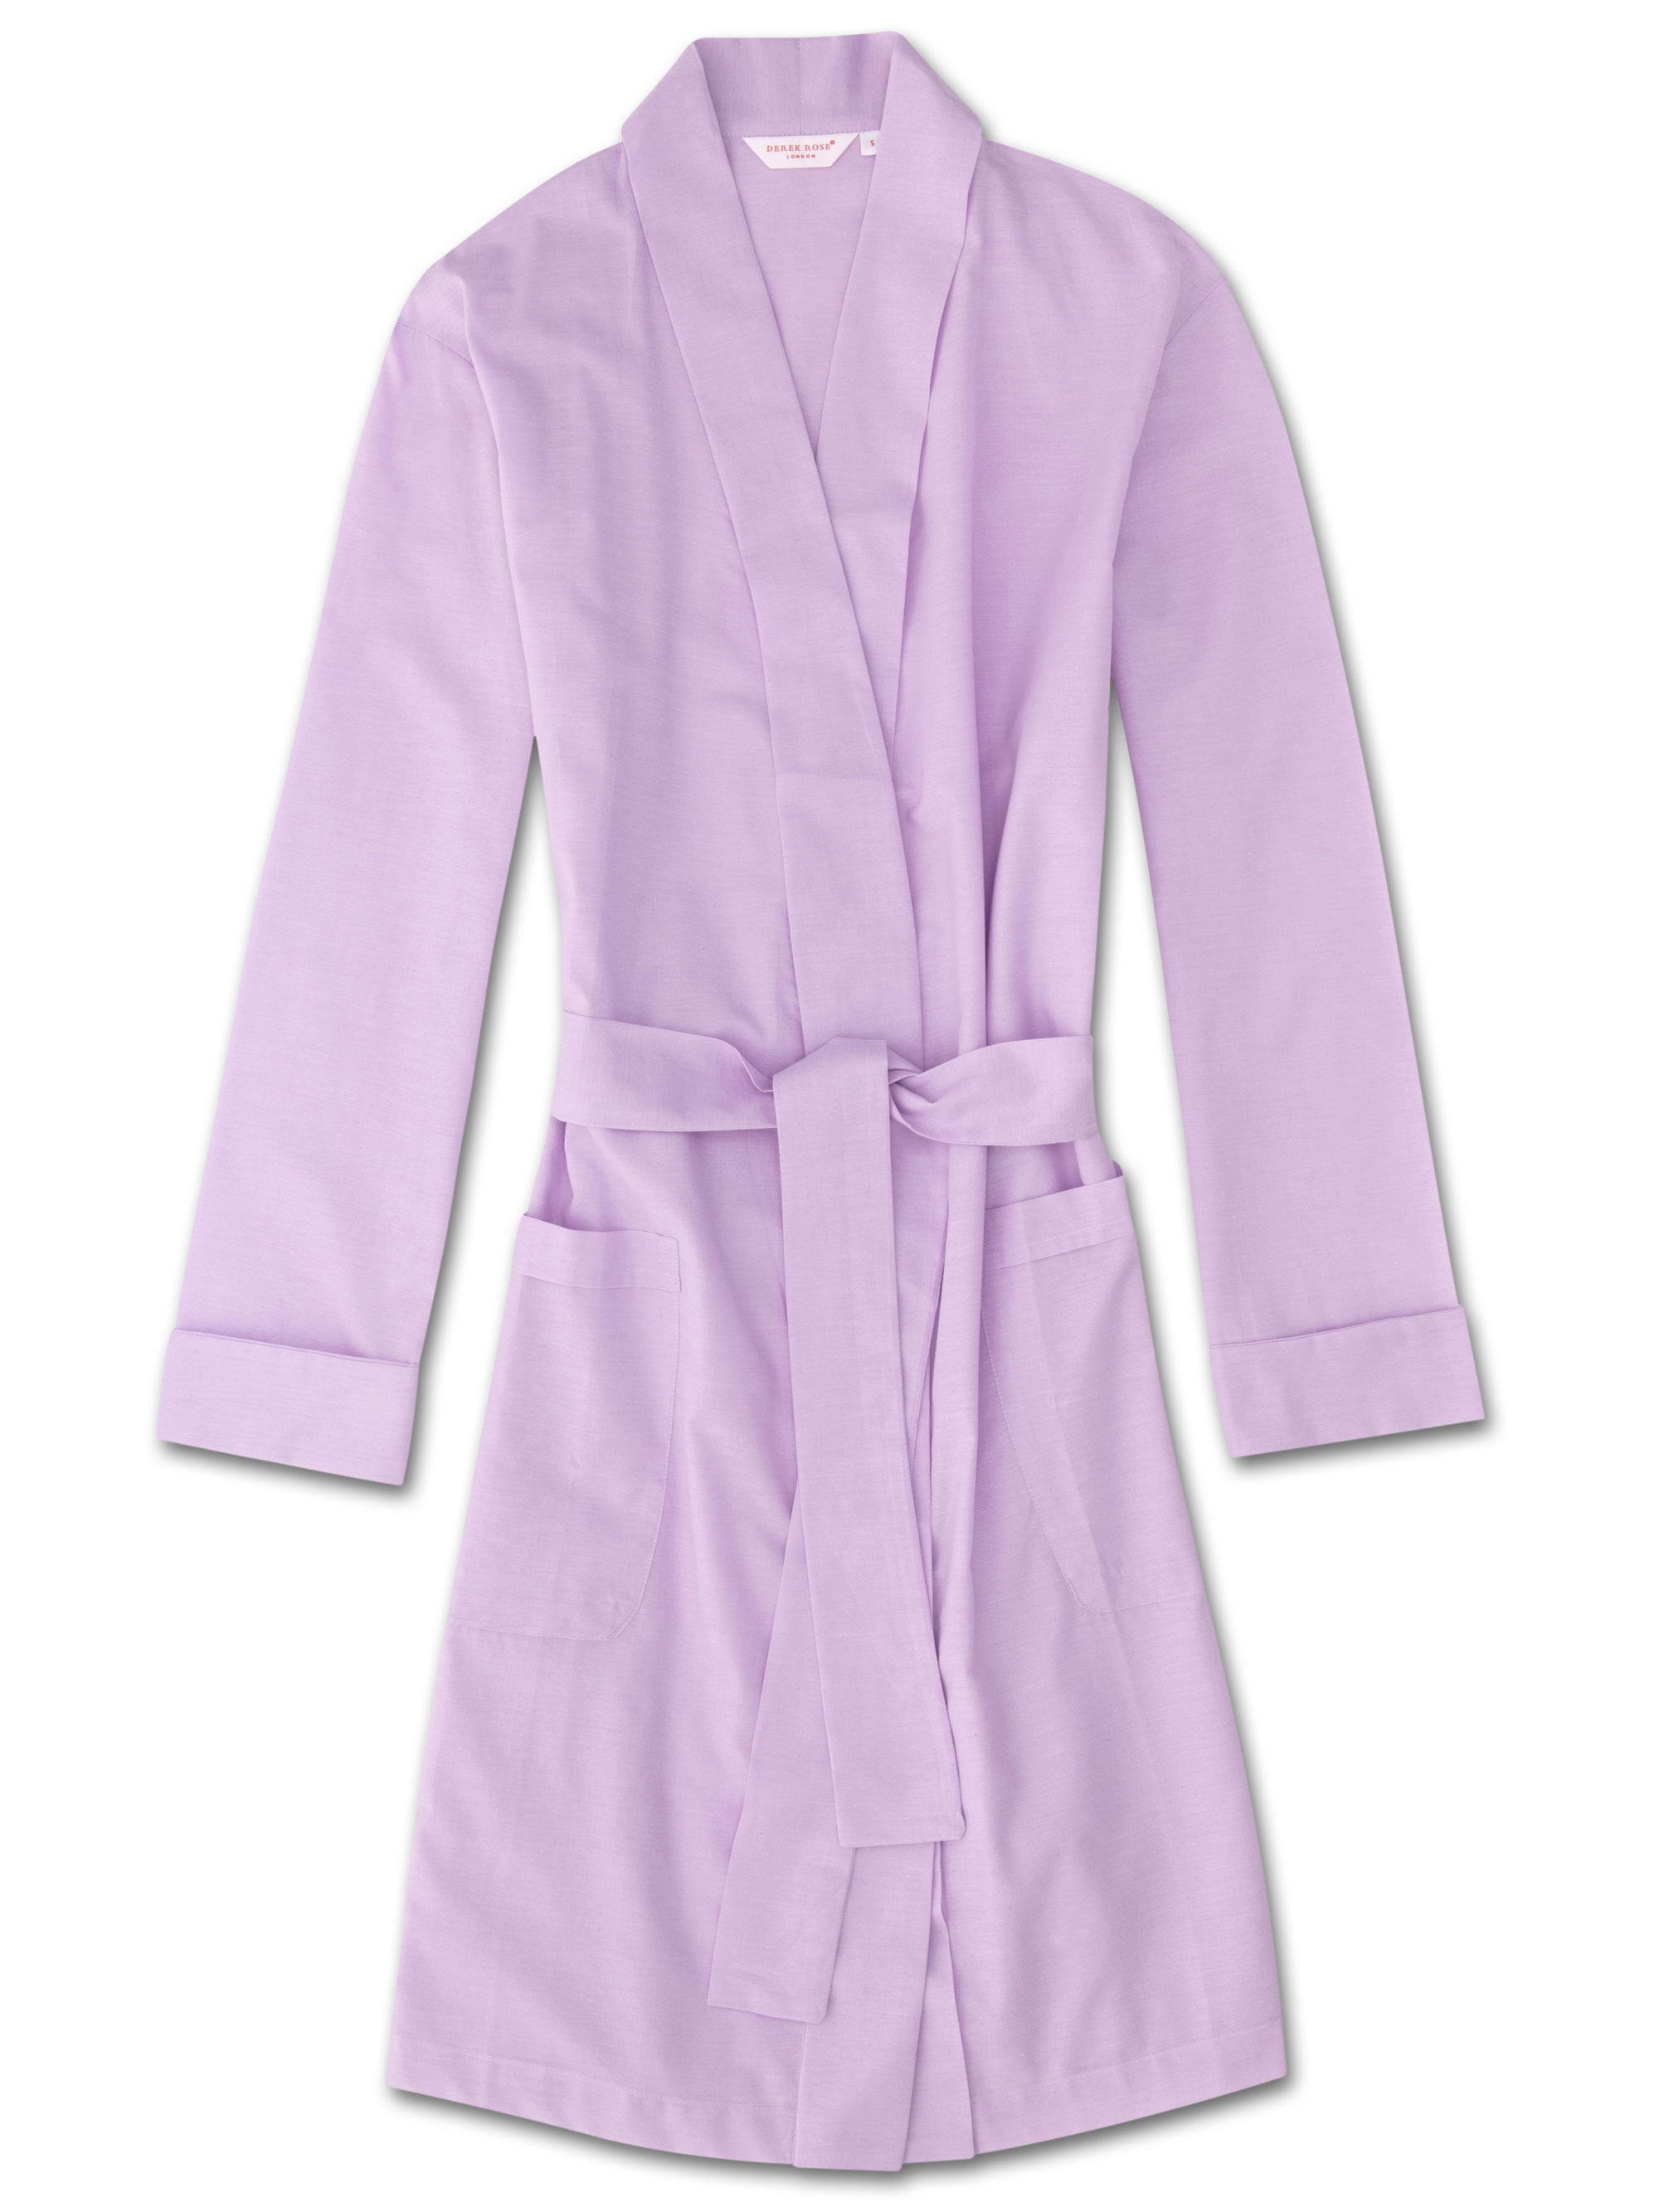 Derek Rose Women's Dressing Gown Amalfi Cotton Batiste Lilac